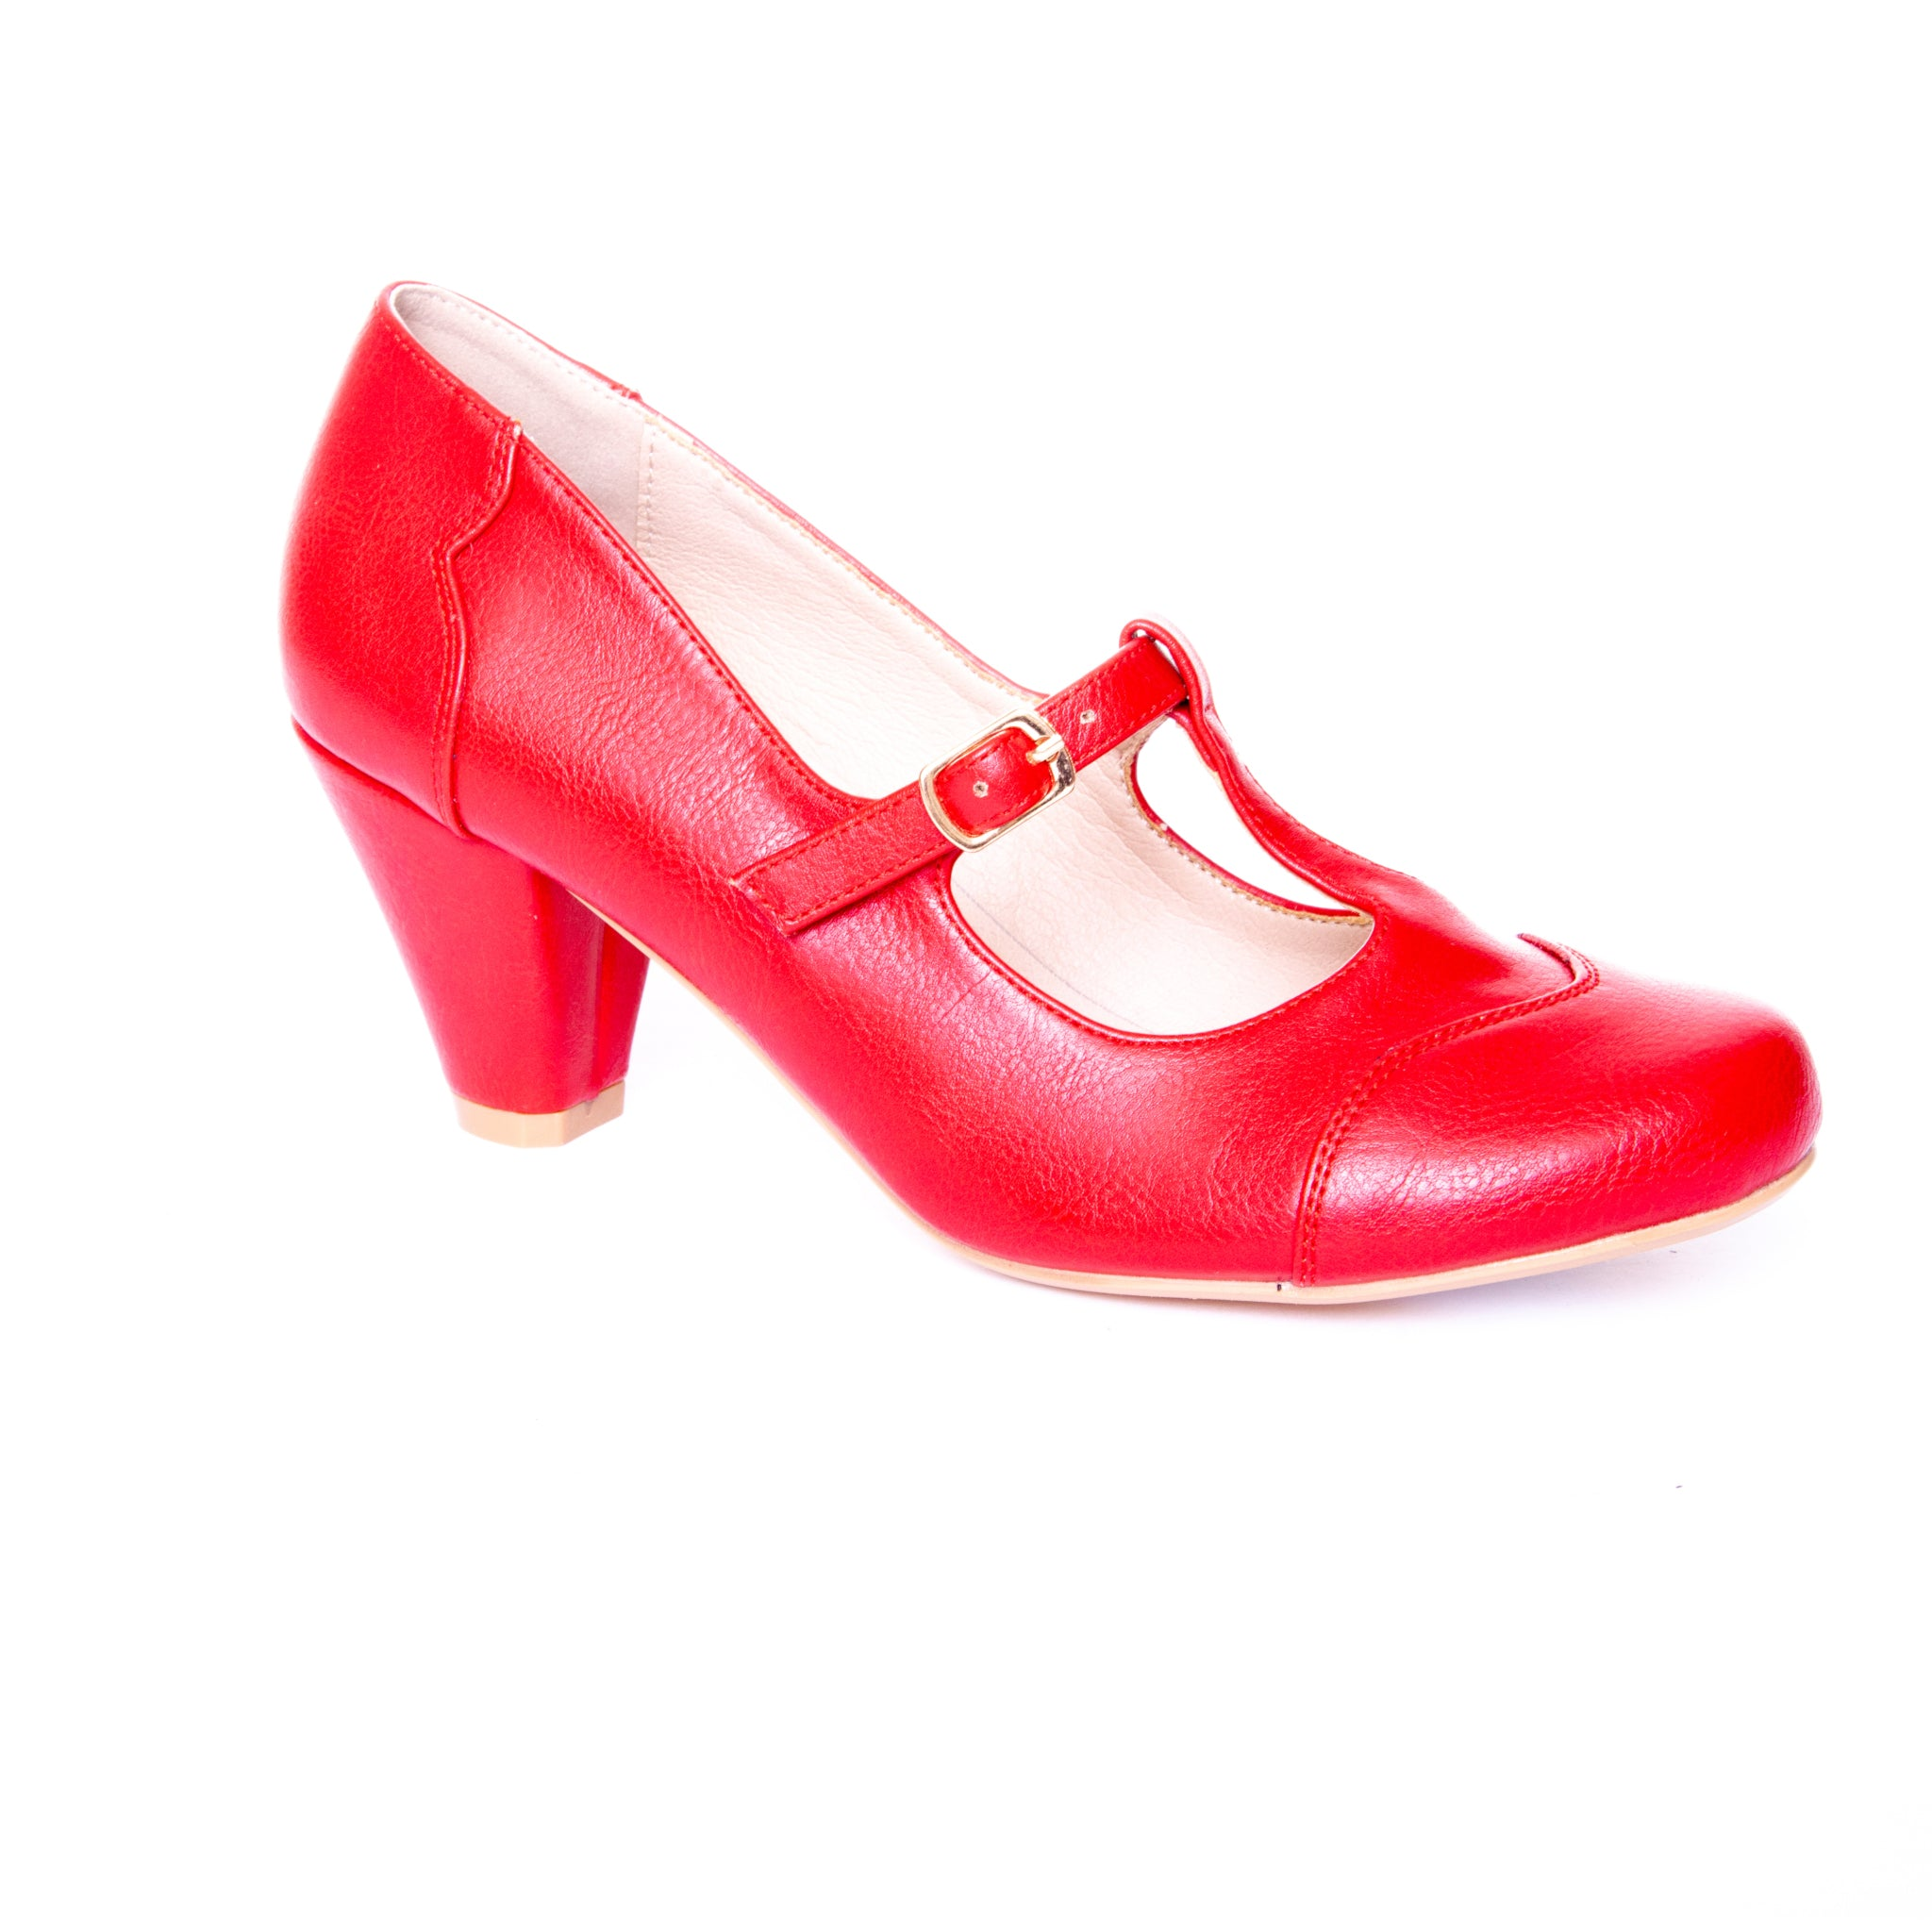 Alexa by Dolce Nome | Mary Jane T-Strap Pumps in Red (main view)